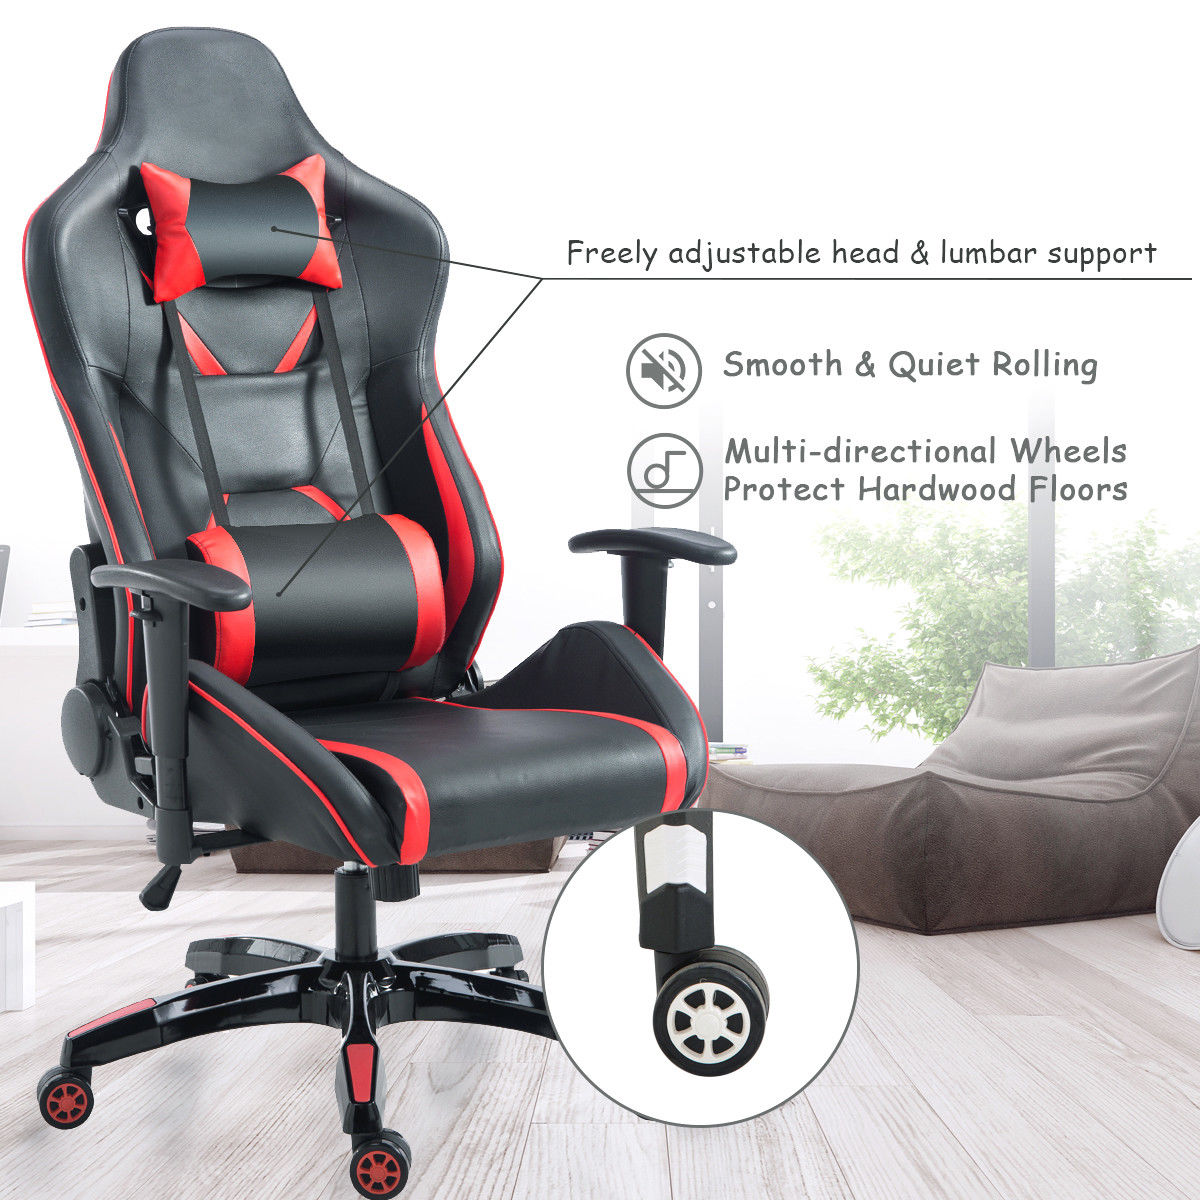 Giantex Gaming Chair High Back Racing Recliner Office With Lumbar Support Headrest Ergonomic Computer Armchairs Hw56580 In Chairs From